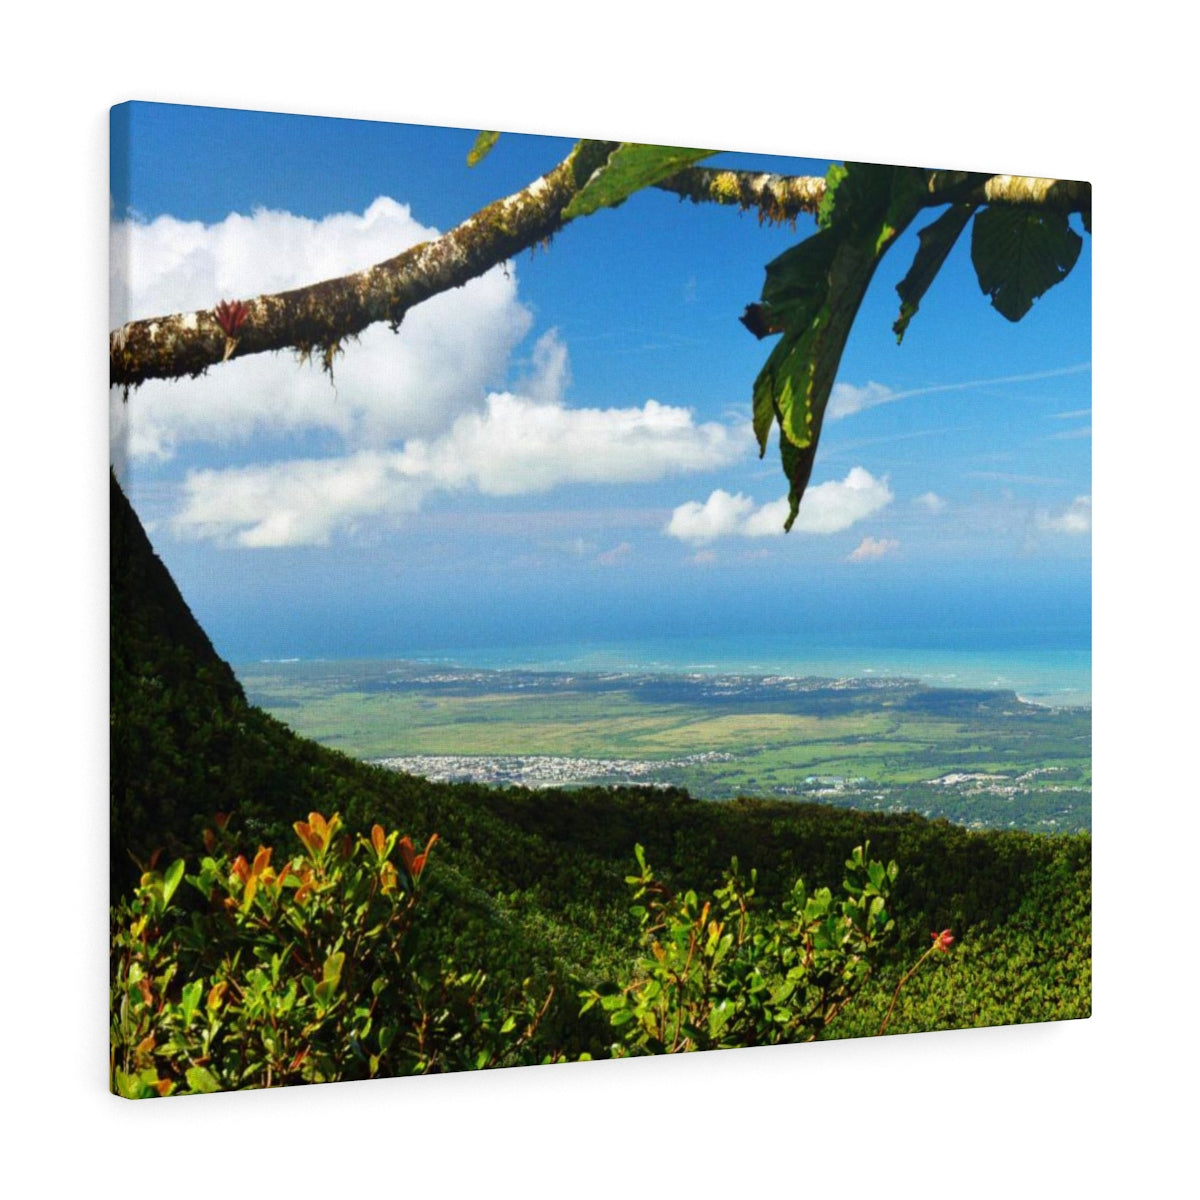 Lucky clear day in Tres Picachos near El Yunque at 3,175 feet - El Yunque rainforest - Canvas Gallery Wraps (bundle)